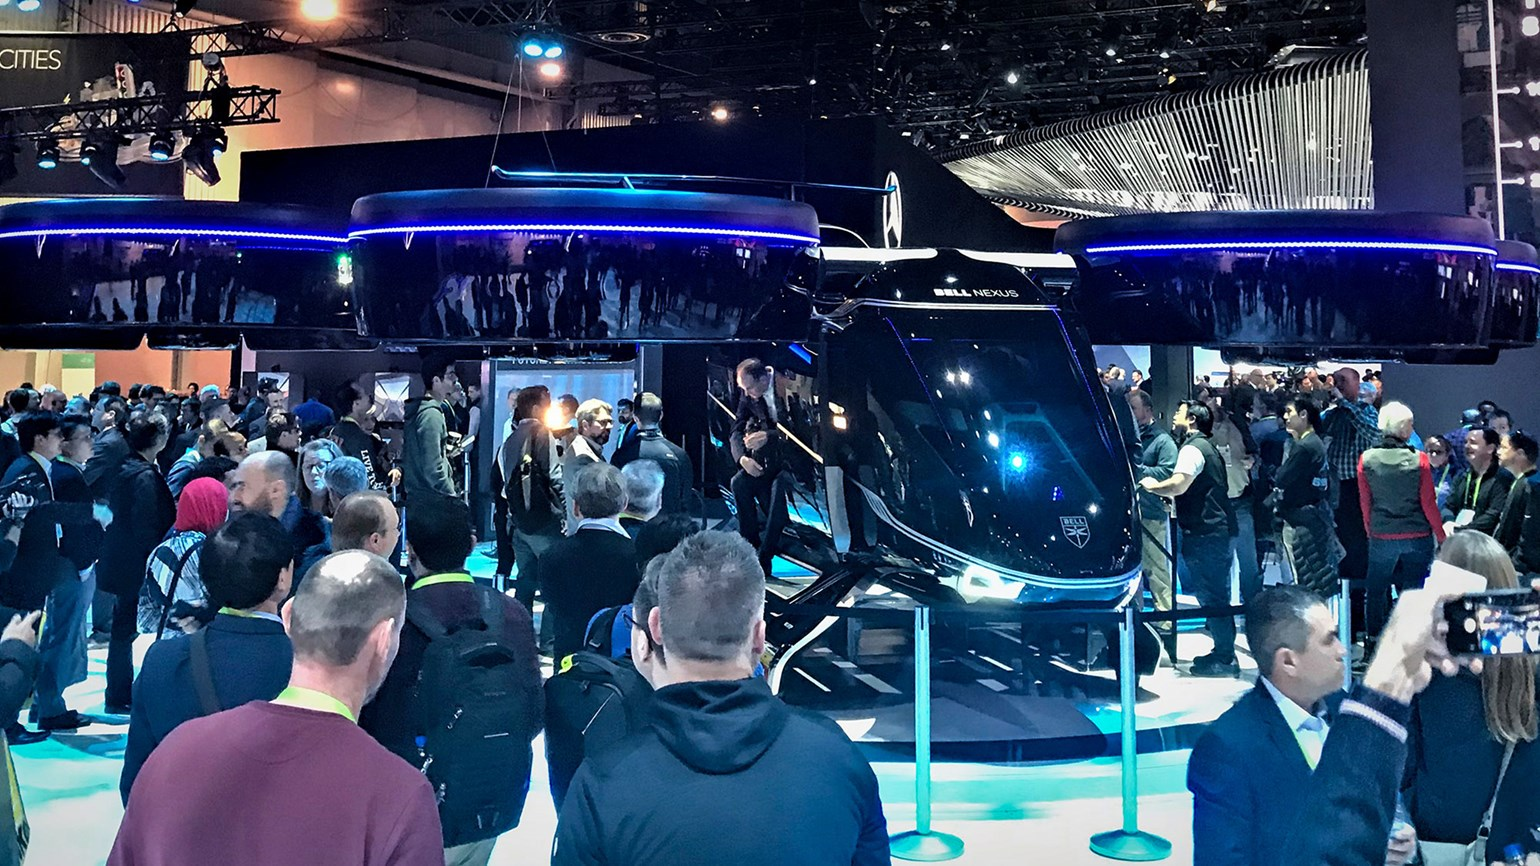 The Future, Part 1: At CES, Uber's plans for an air taxi unfold